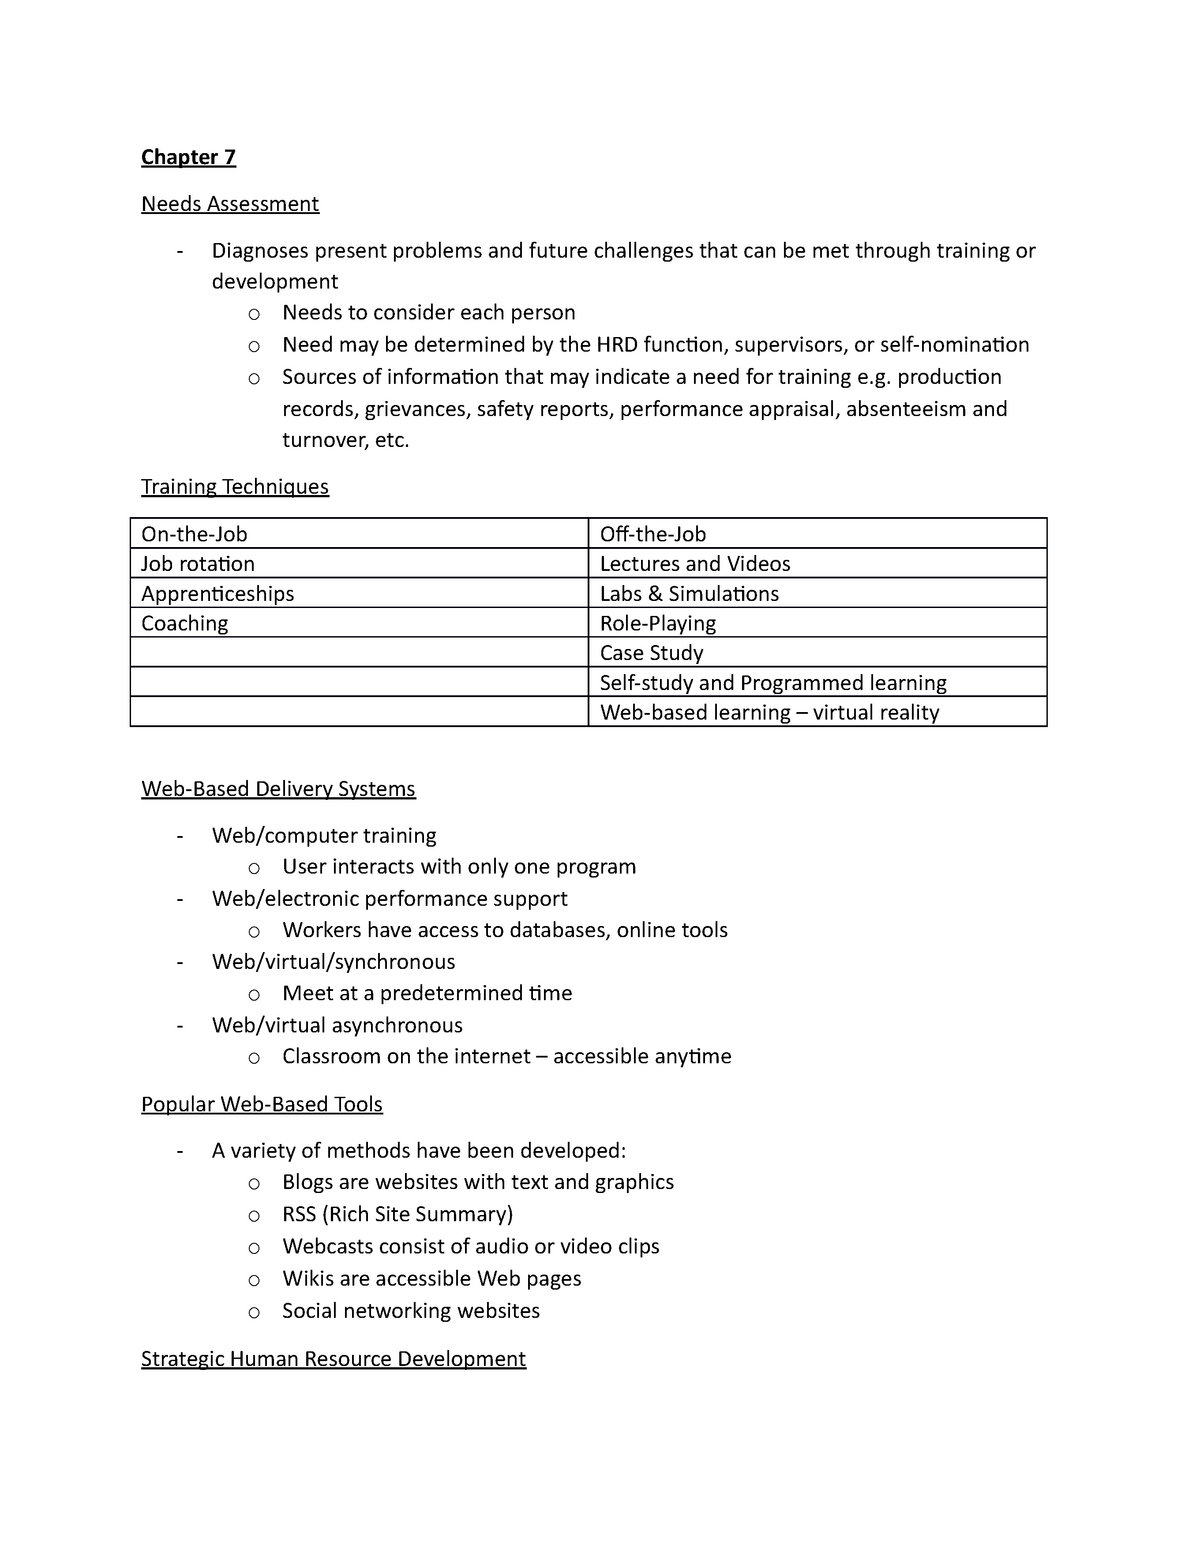 Lecture notes on Chapter 7 2 - Busi 4320: Human Resource